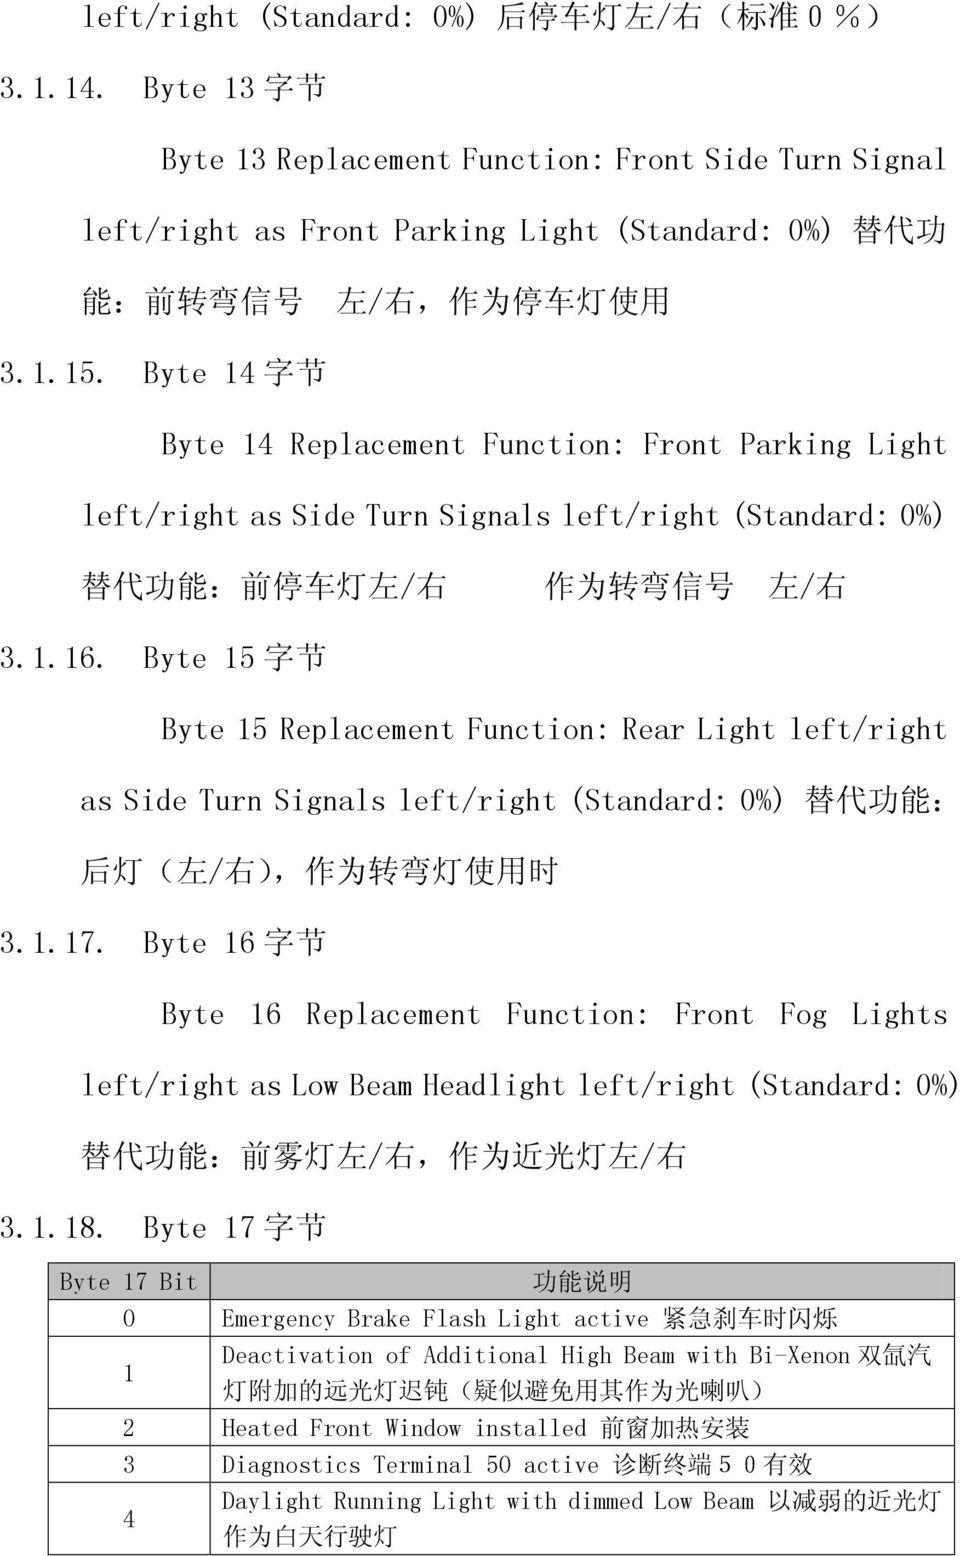 Byte 14 字 节 Byte 14 Replacement Function: Front Parking Light left/right as Side Turn Signals left/right (Standard: 0%) 替 代 功 能 : 前 停 车 灯 左 / 右 作 为 转 弯 信 号 左 / 右 3.1.16.